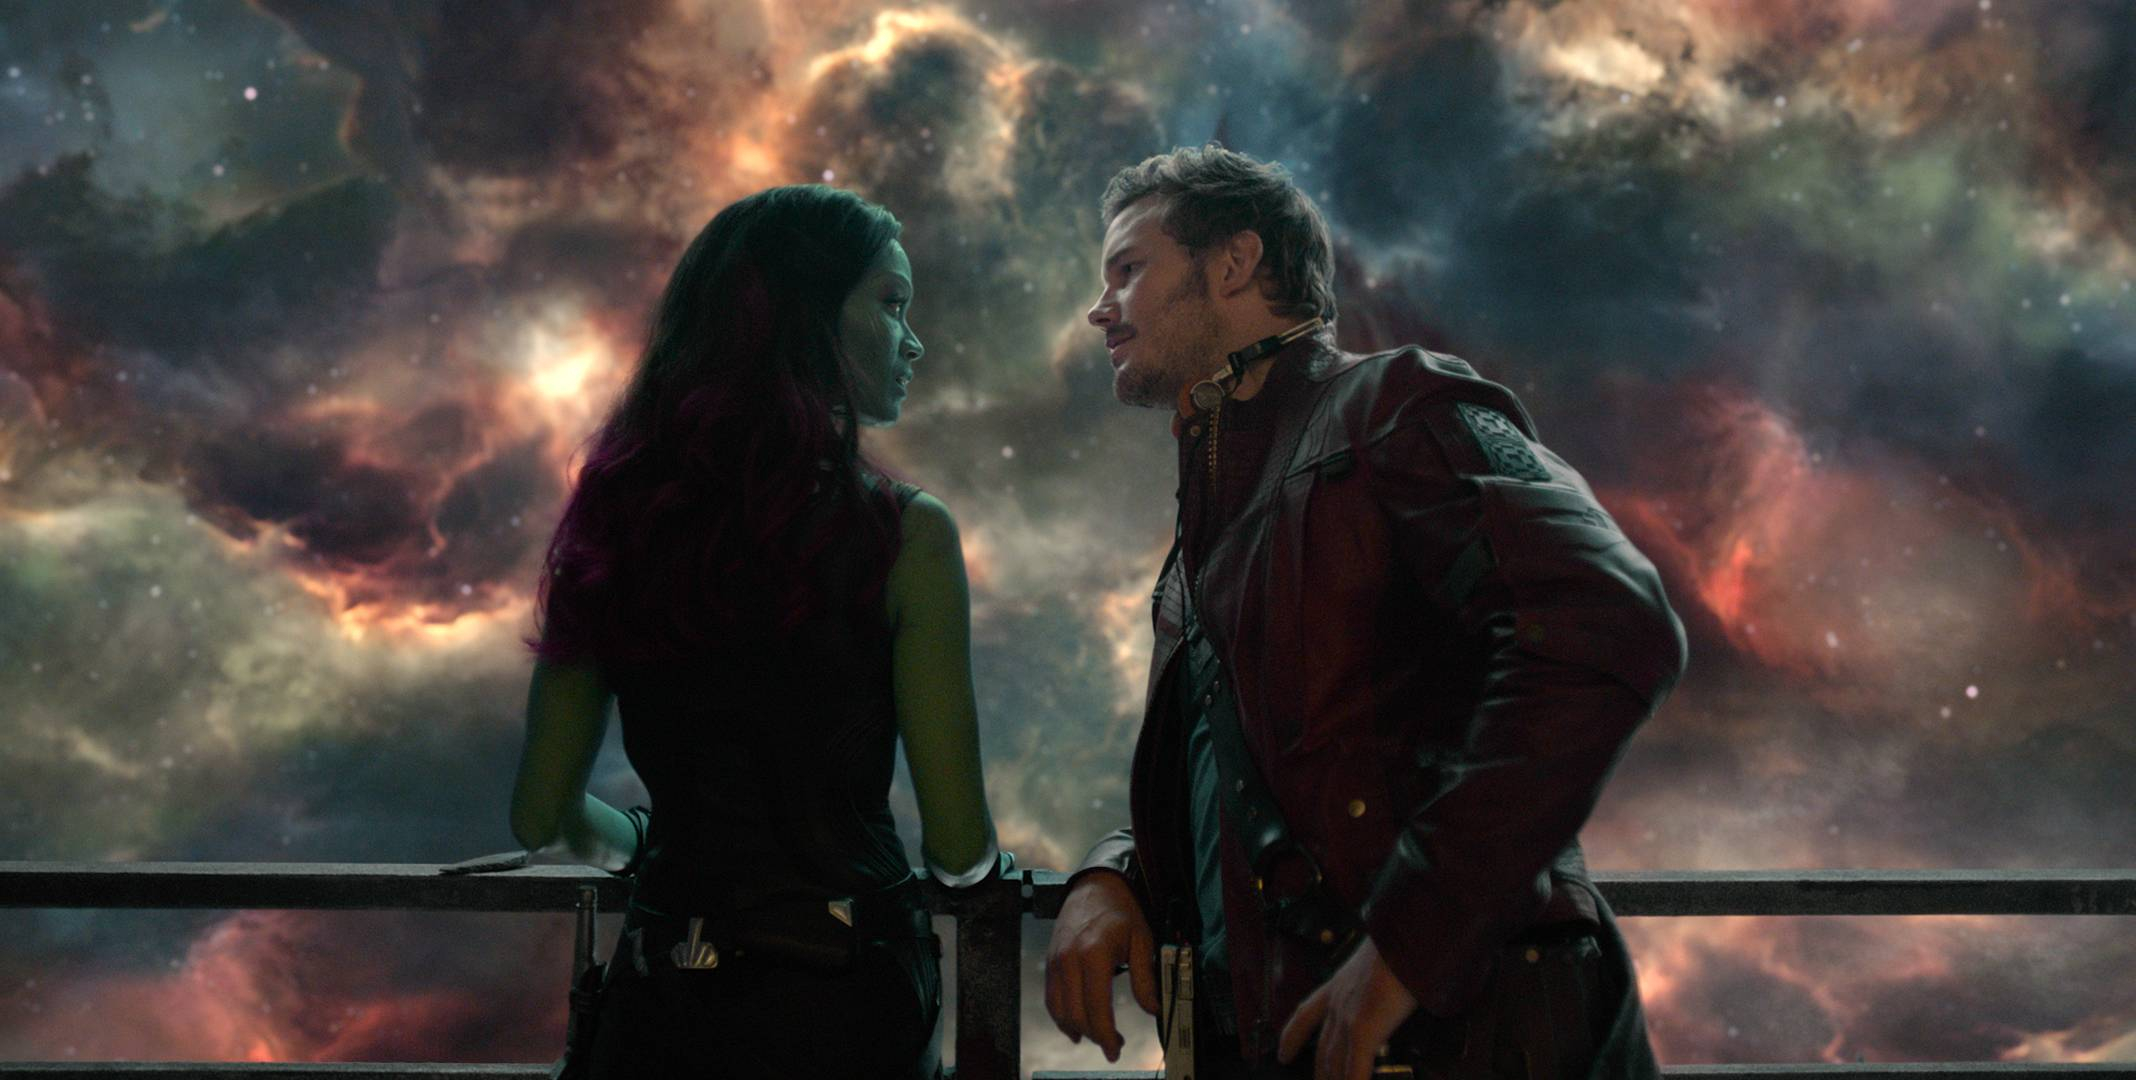 guardians-of-the-galaxy-zoe-saldana-chris-pratt21